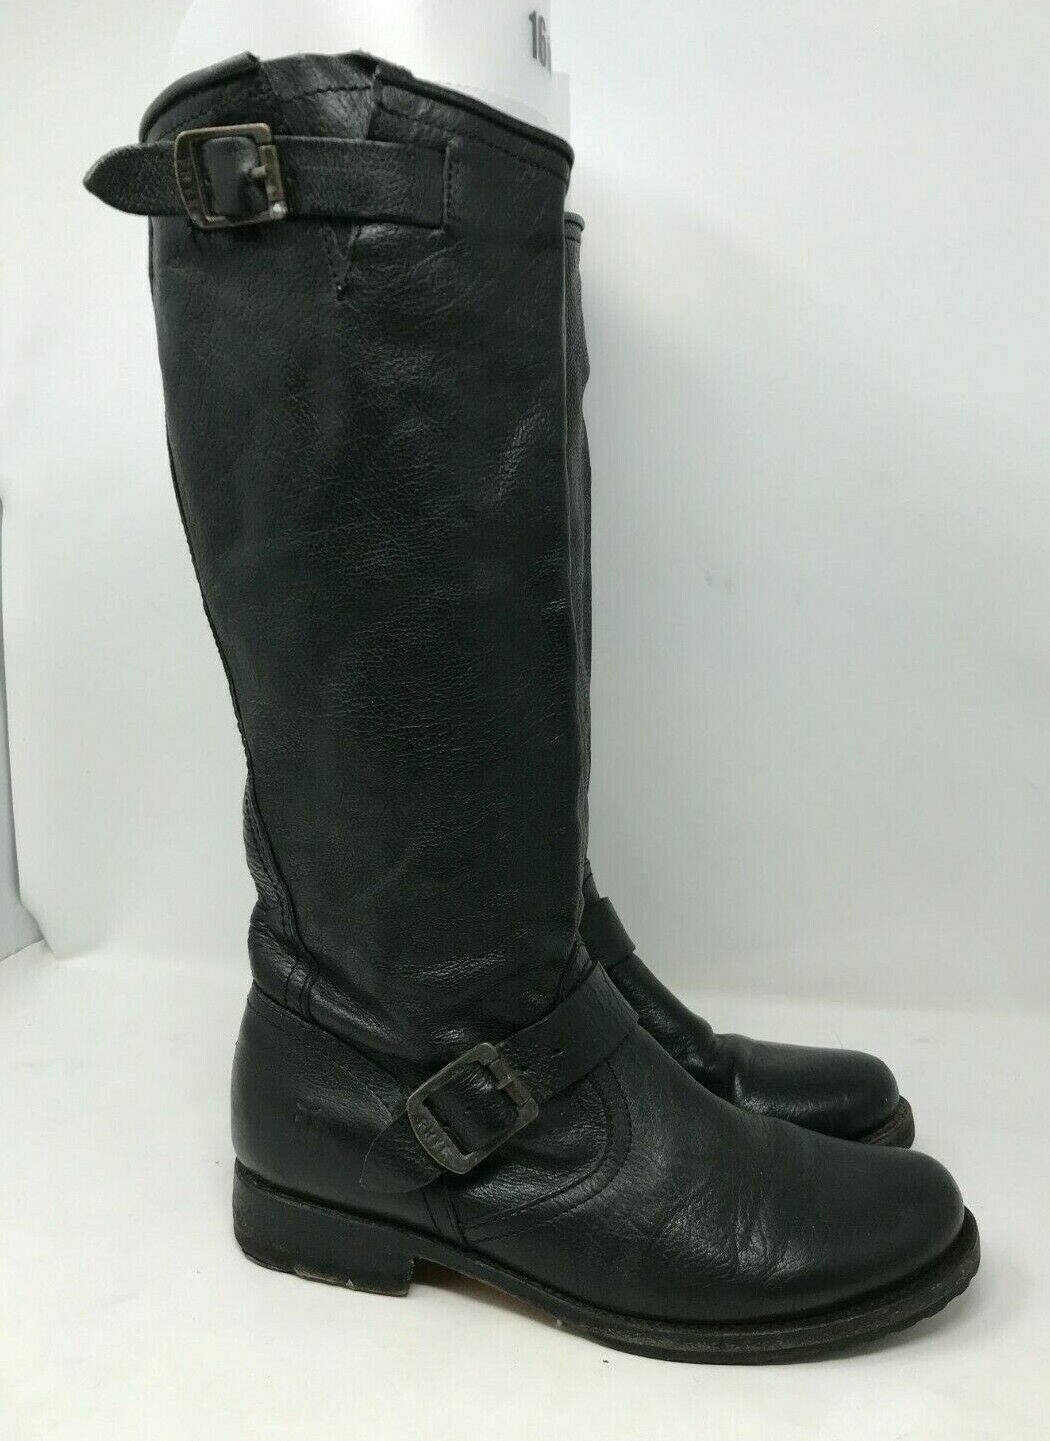 Frye Veronica Slouch sz 9.5 B Tall Black Leather Boots Double buckle riding moto